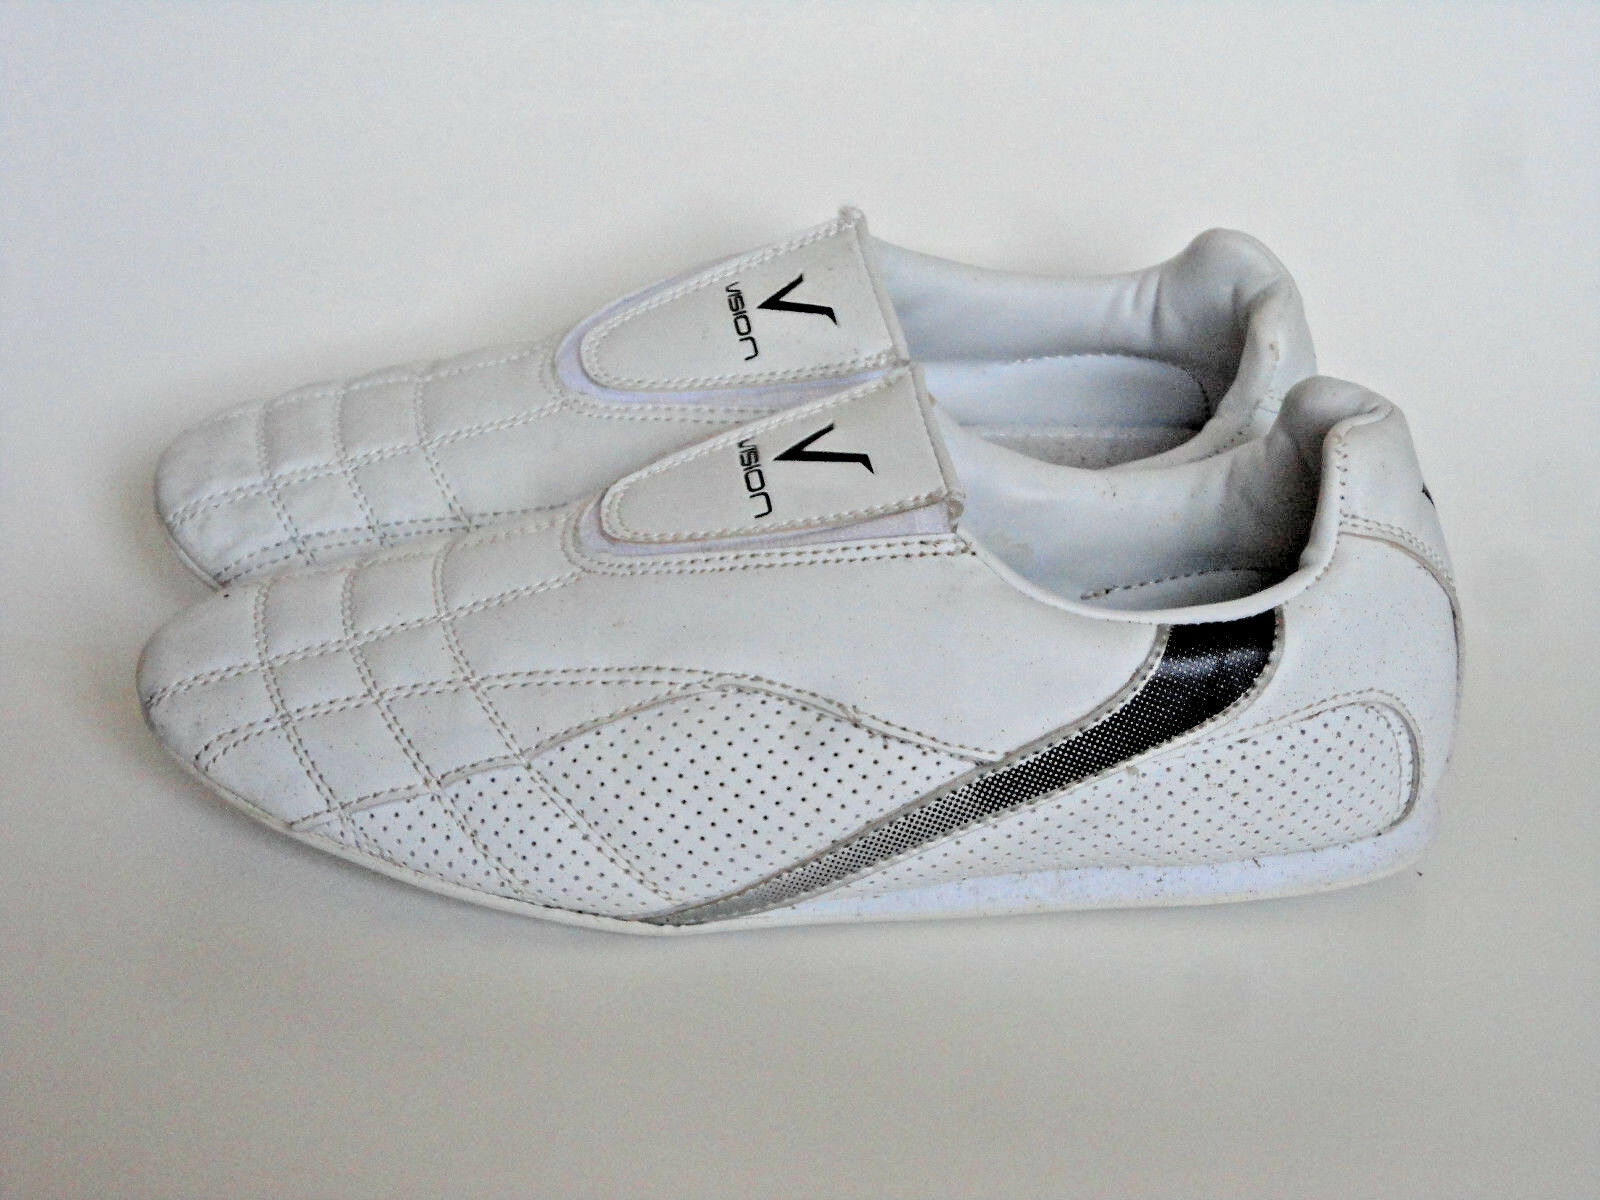 VISION {Size 8.5} Taekwondo White Indoor Martial Arts Karate shoes  EXCELLENT   with 60% off discount